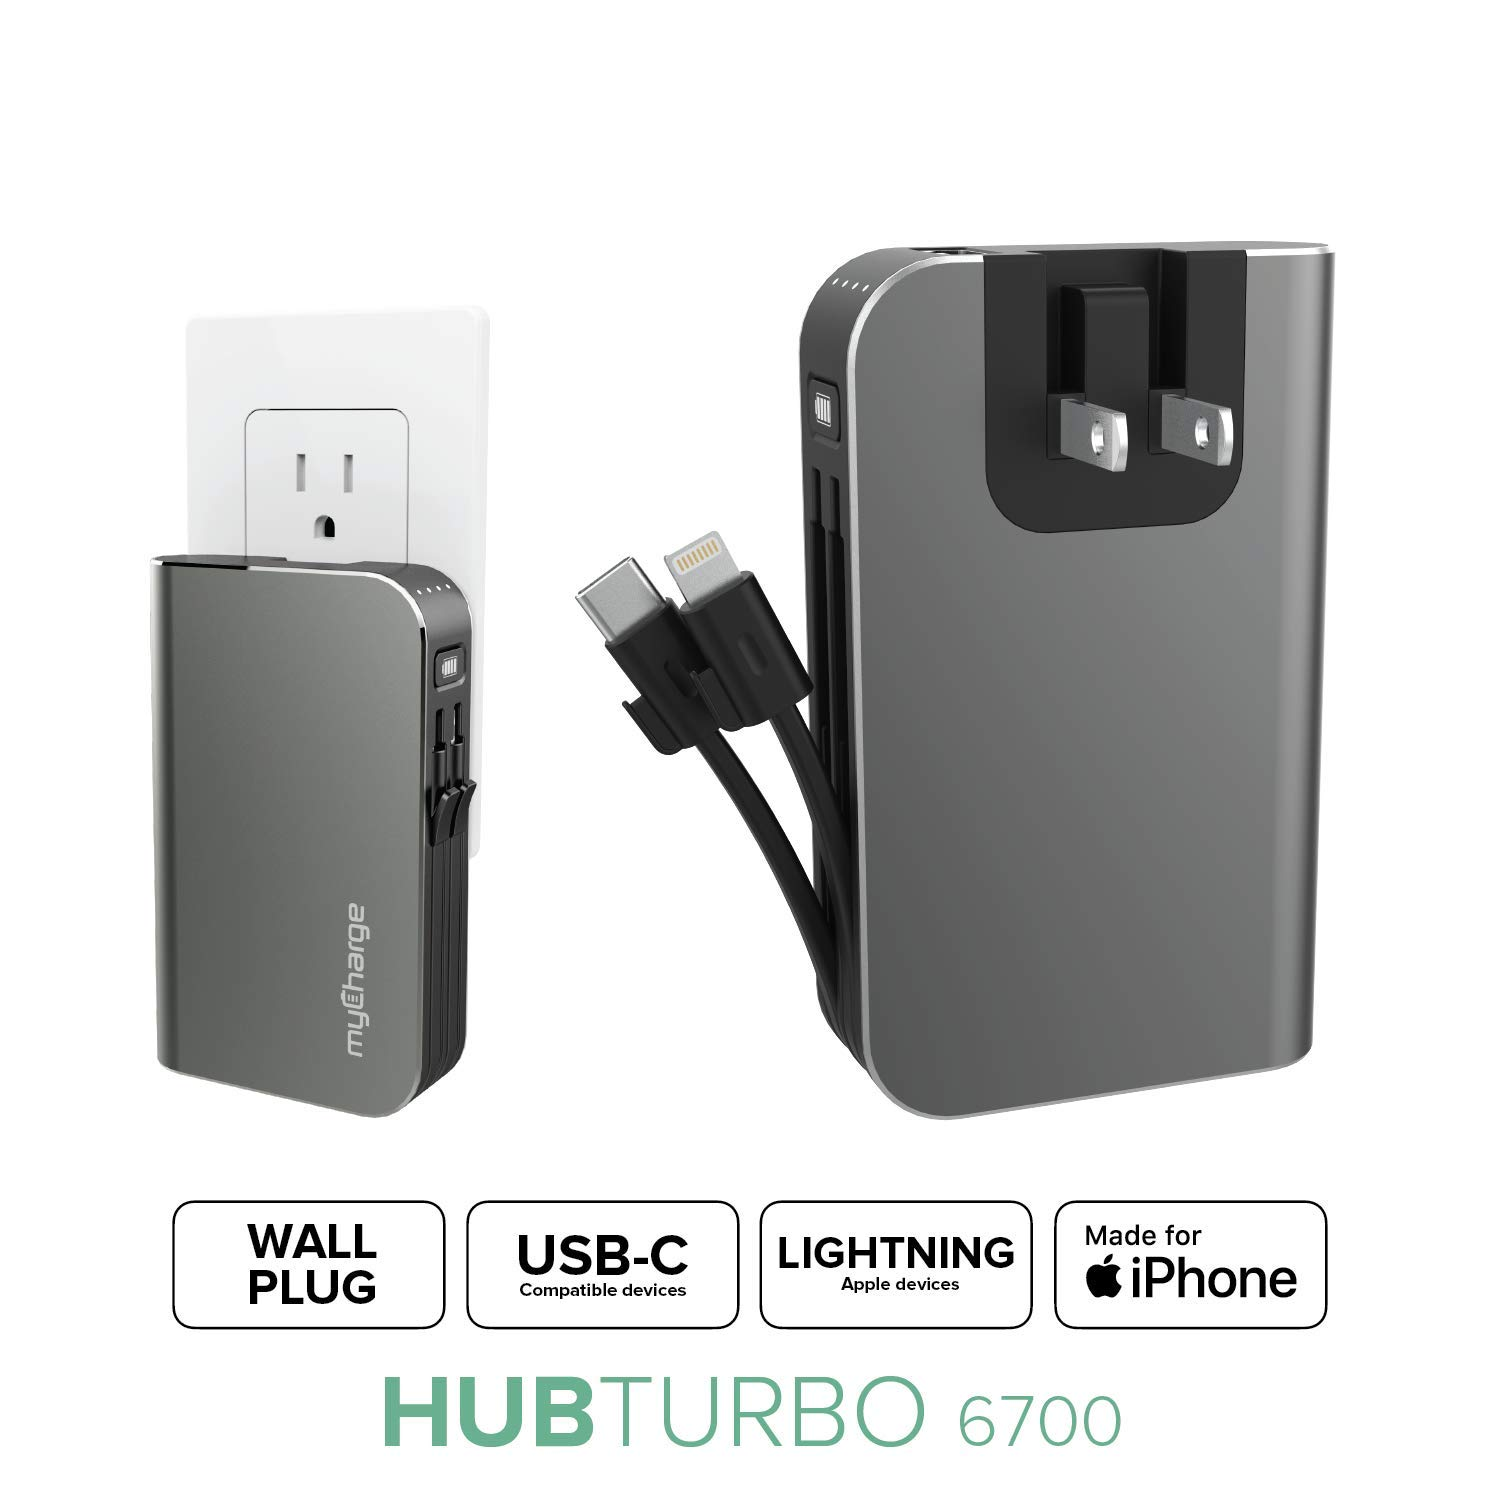 myCharge Portable Charger with Built in Cables [iPhone Lightning + USB C] 6700 mAh 18W Fast Charge Hub Turbo Power Bank External Battery Pack | AC Wall Charger Plug, Dual Cords, USB-A Output